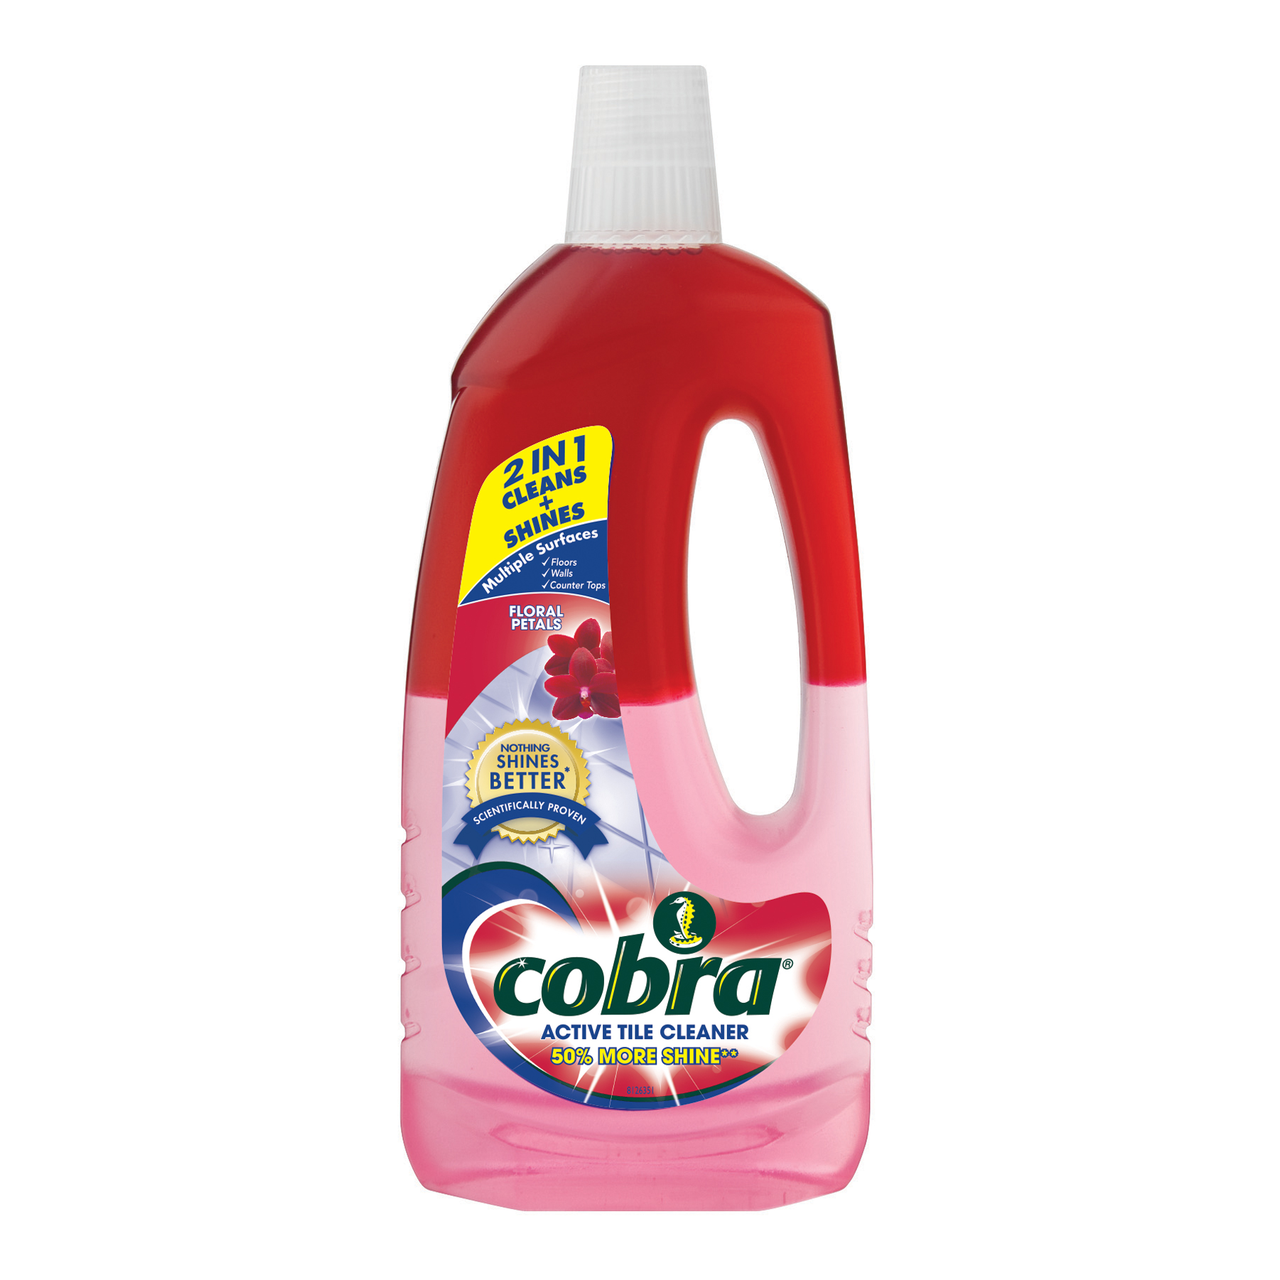 The Best Tile Cleaning Products | Cobra Tile Cleaner